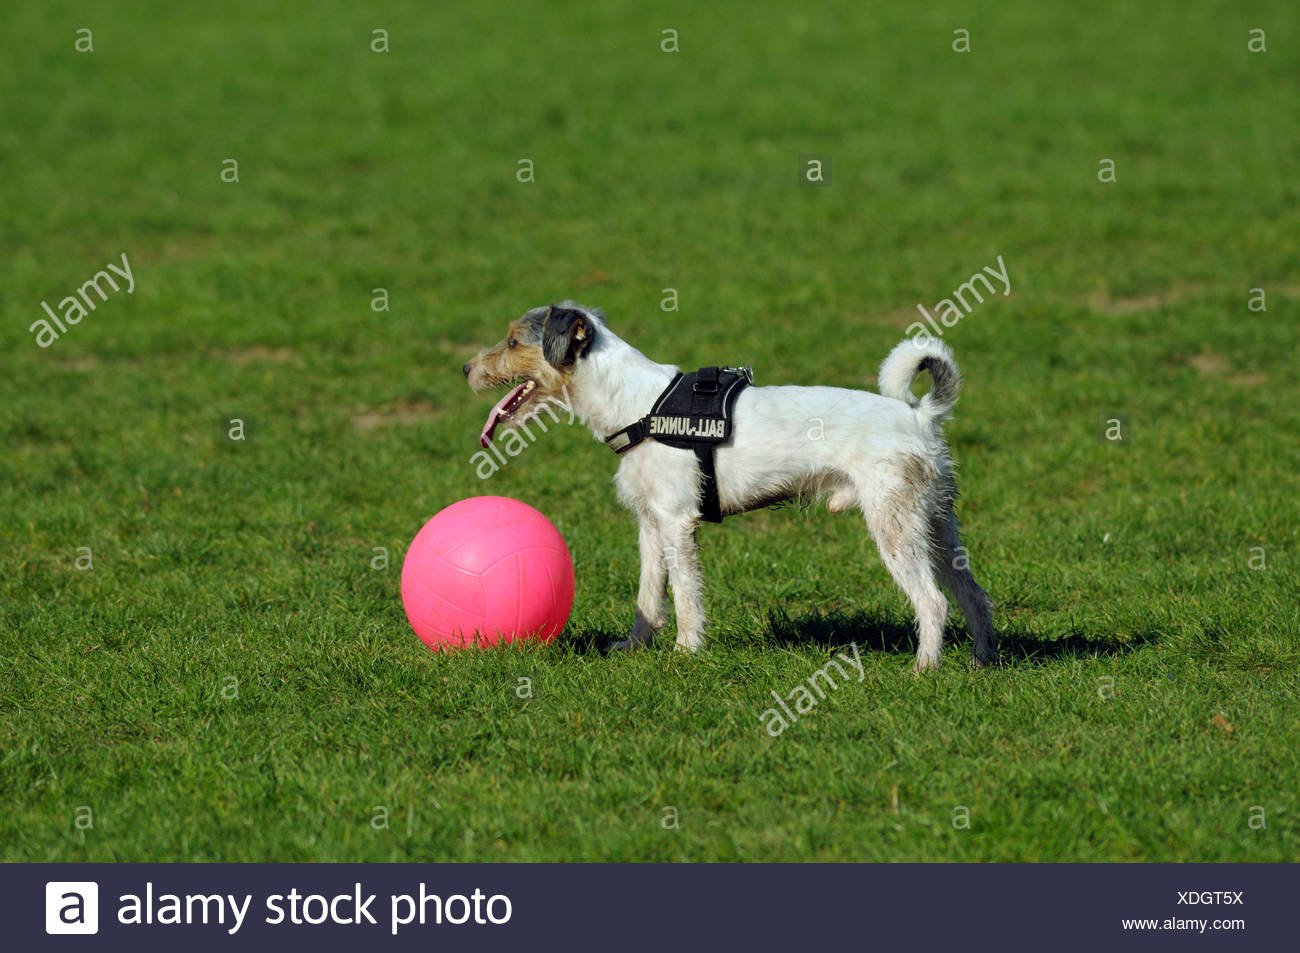 Terrier has stopped his pink ball and is waiting, panting - Stock Image